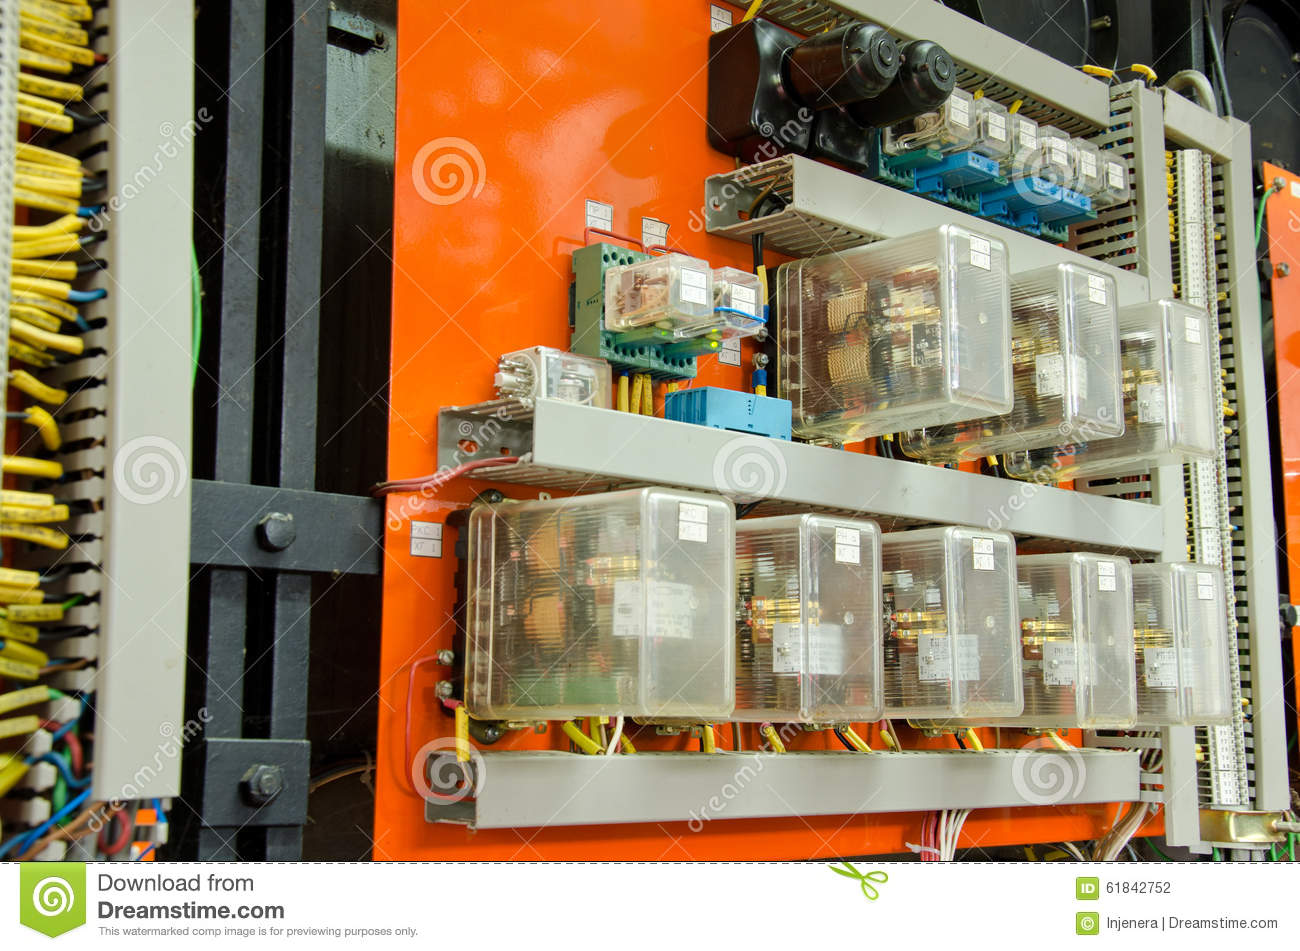 Control Panel With Cables And Wires Stock Photo Image Of Wiring A Panelpanelwiredjpg